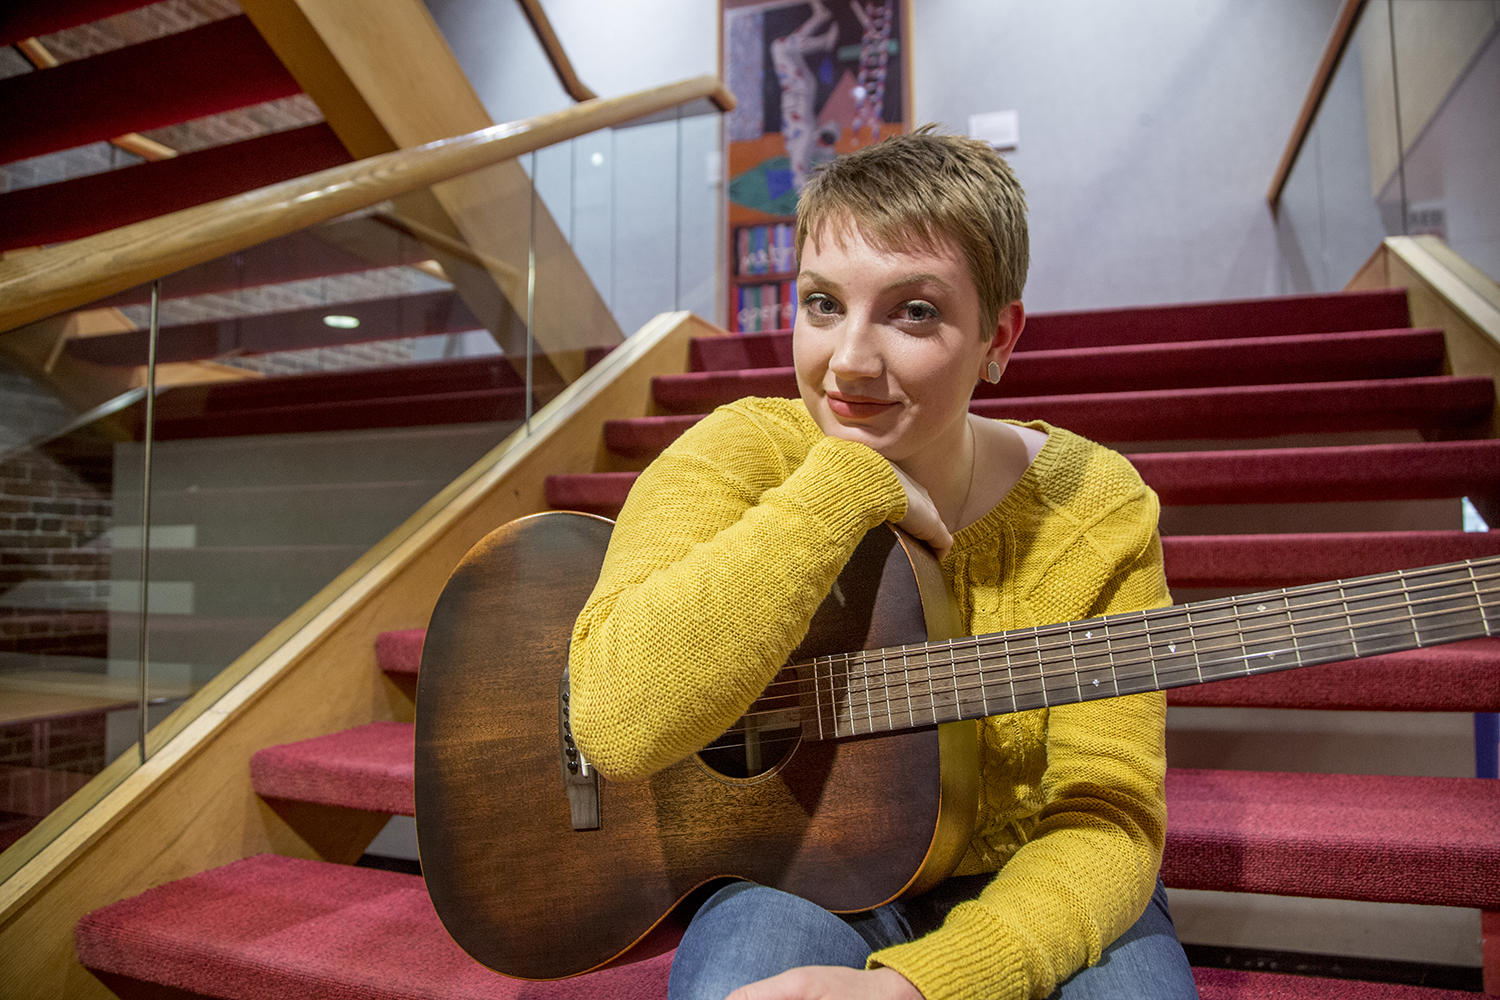 UI junior Clara Reynen poses for a portrait at the Theatre Building on Wednesday, March 6, 2019. Reynen writes her own folk music and performs on stage when not doing stand-up comedy.